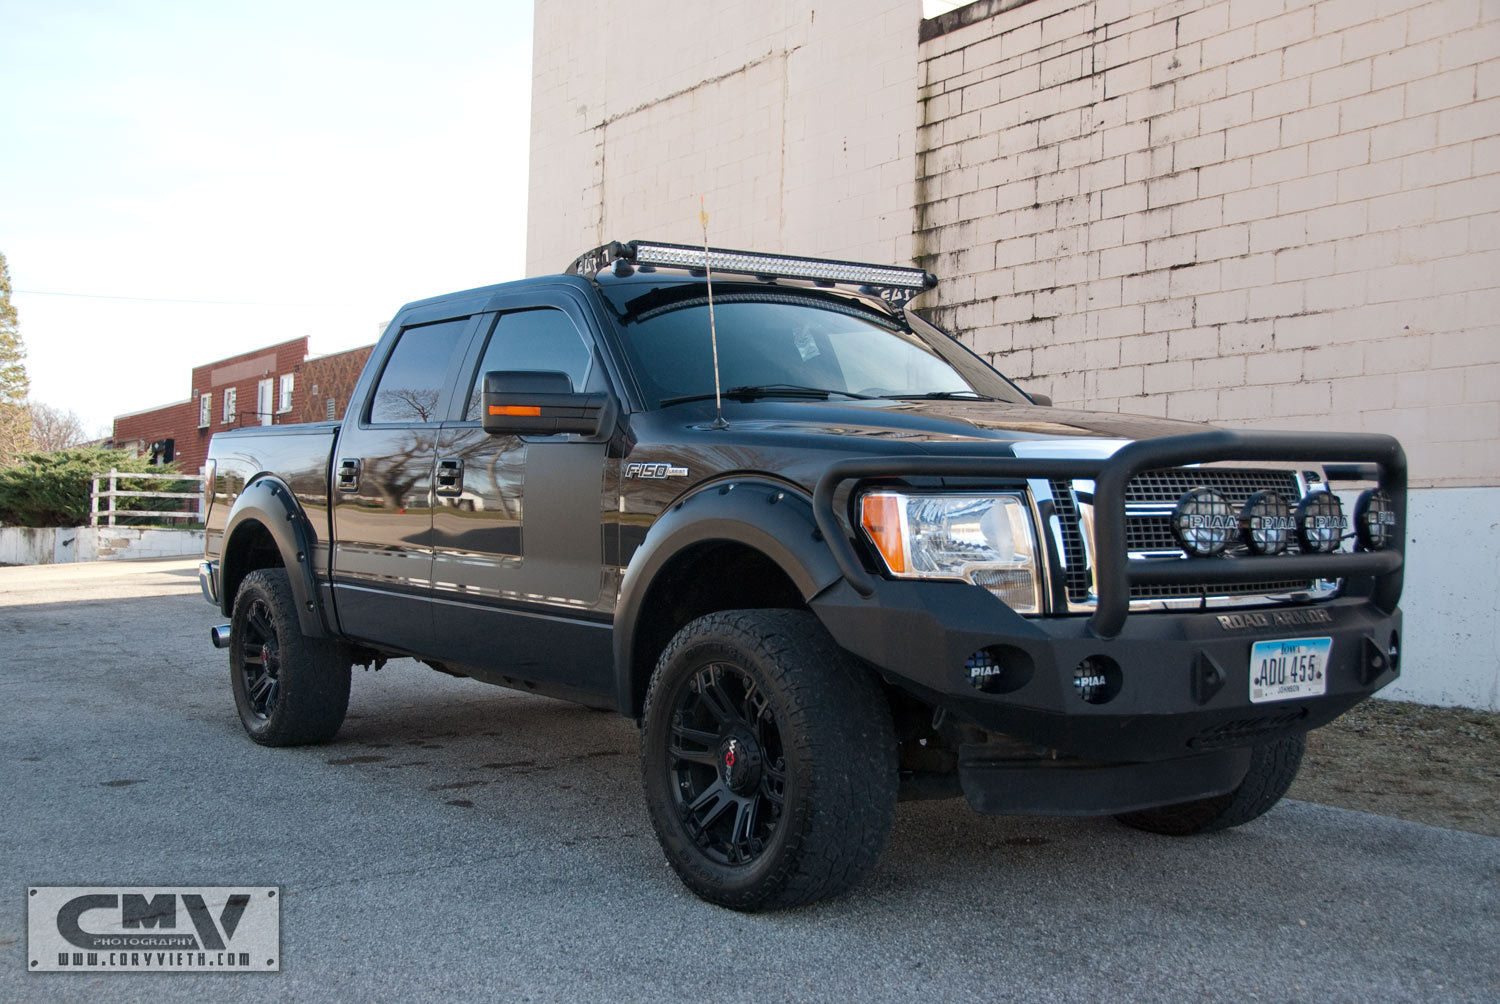 2012 Ford F 150 Lariat Crew Cab Pickup 3.5L for sale